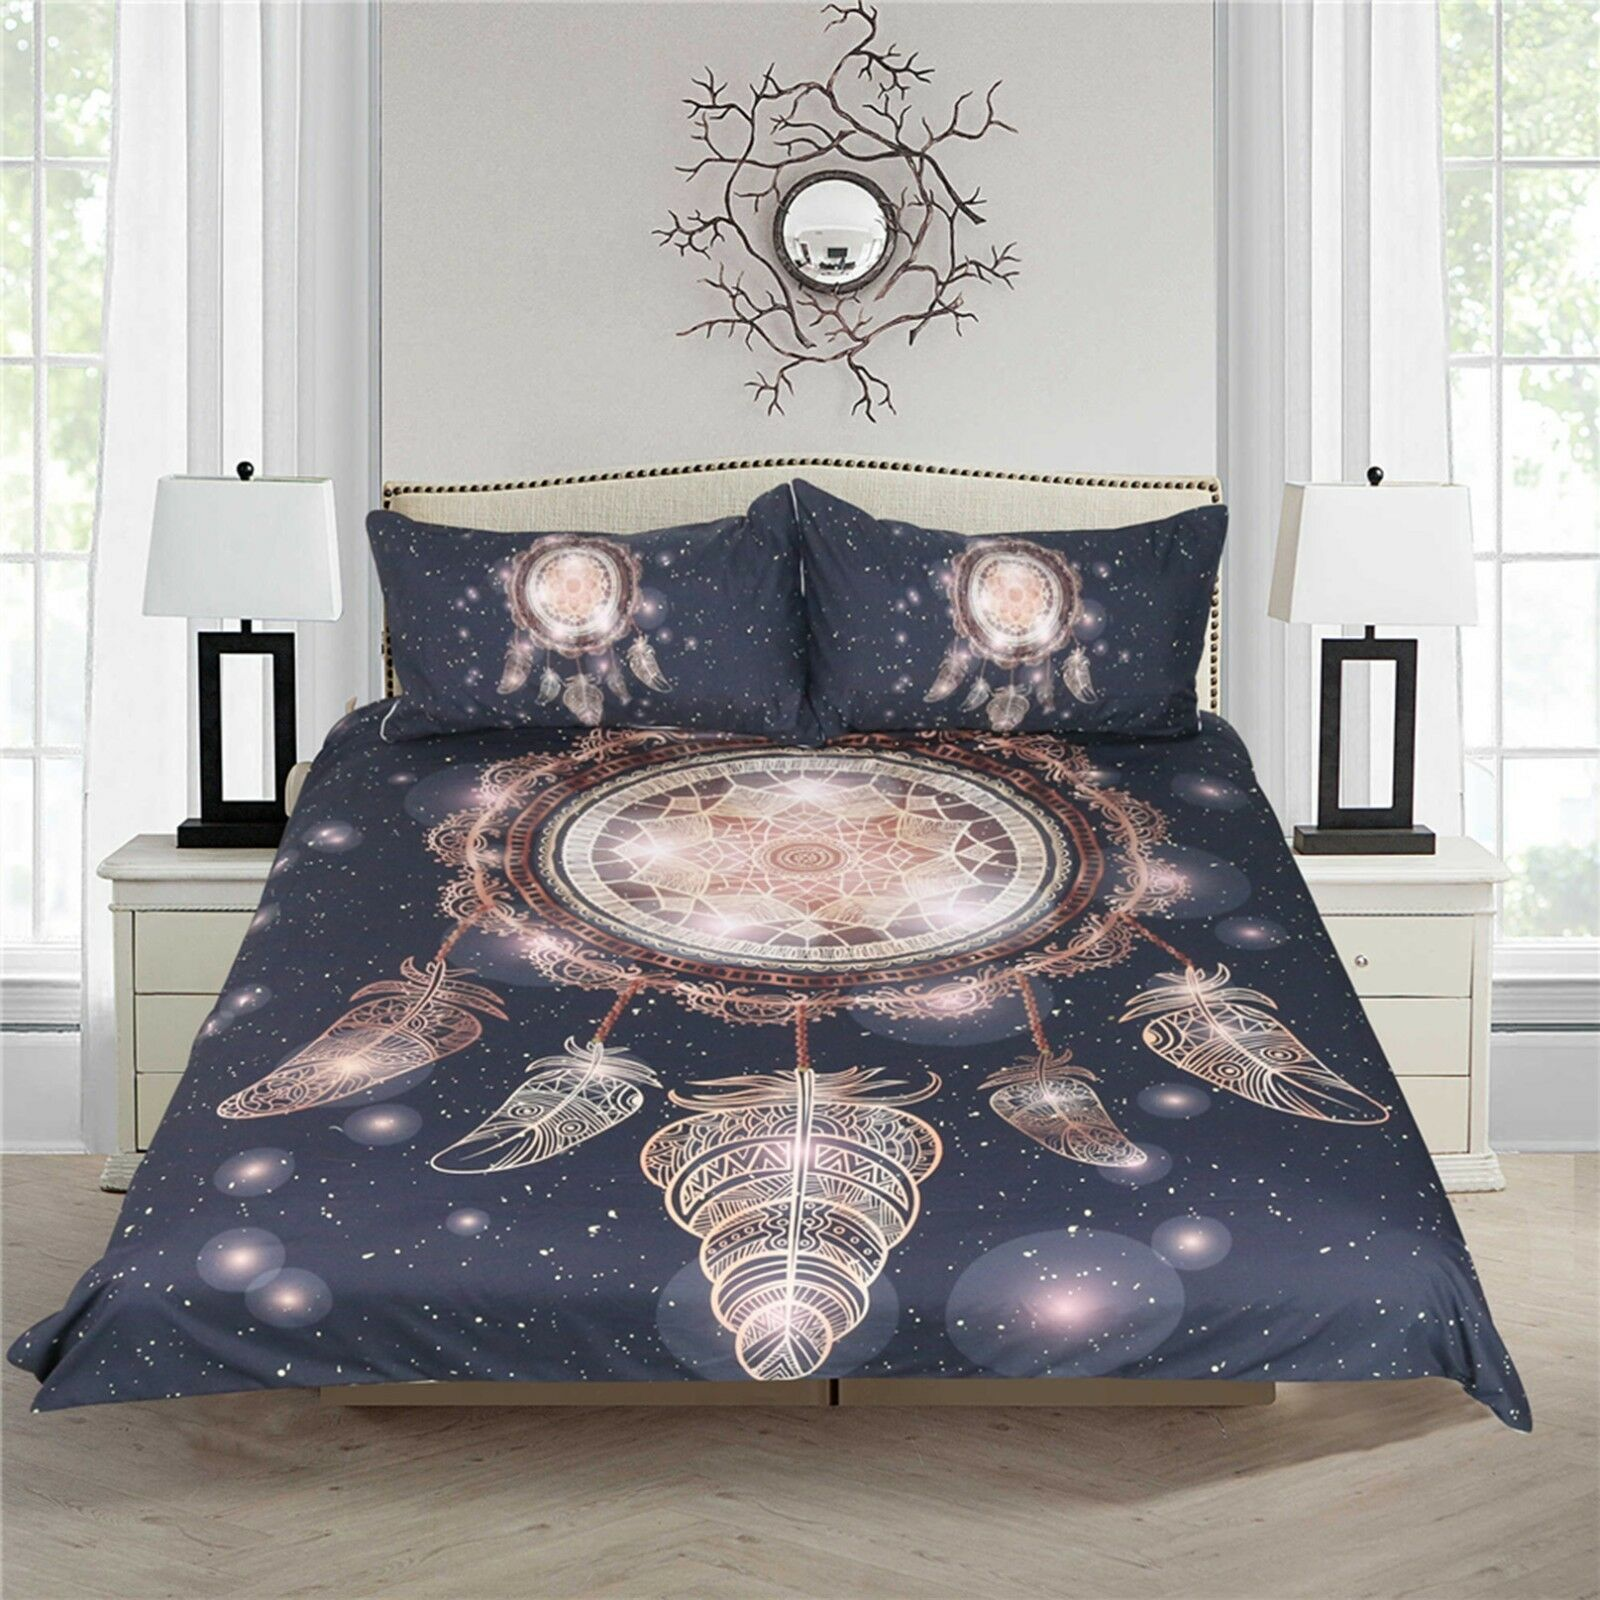 3D Fantasy Feather 494 Bed Pillowcases Quilt Duvet Cover Set Single Queen CA